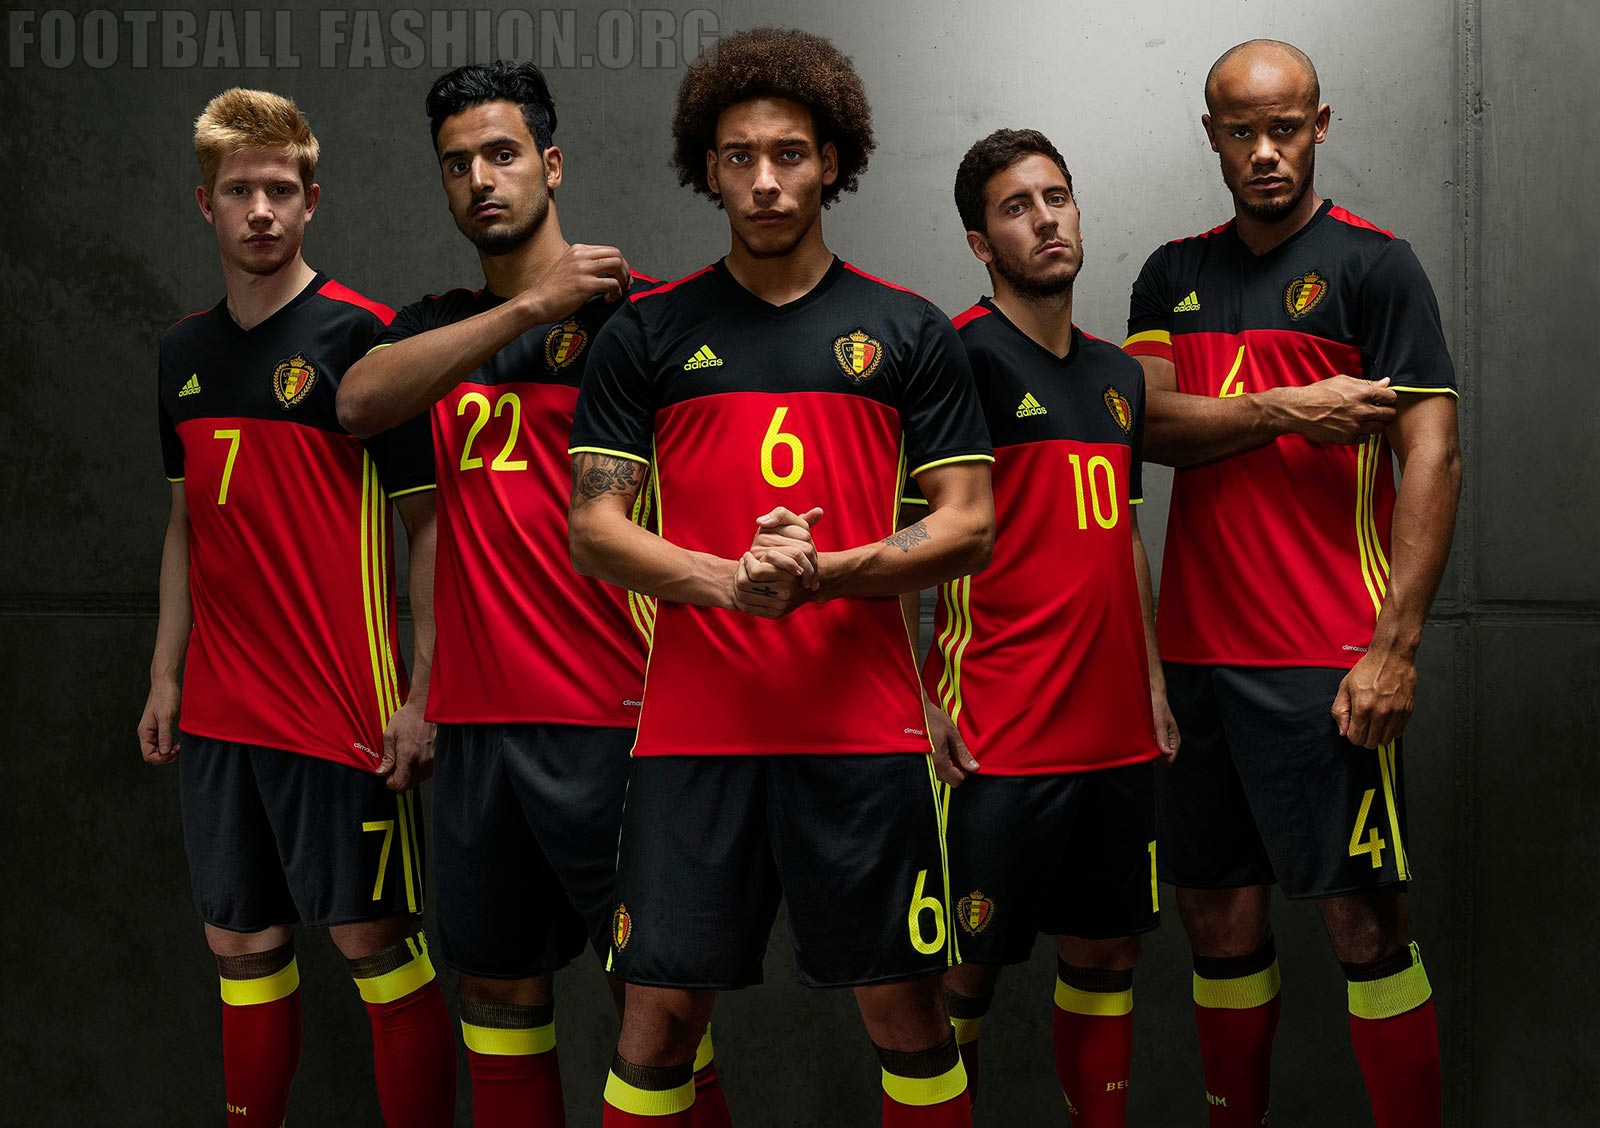 f1cbe9a5b Belgium EURO 2016 adidas Home Kit - FOOTBALL FASHION.ORG